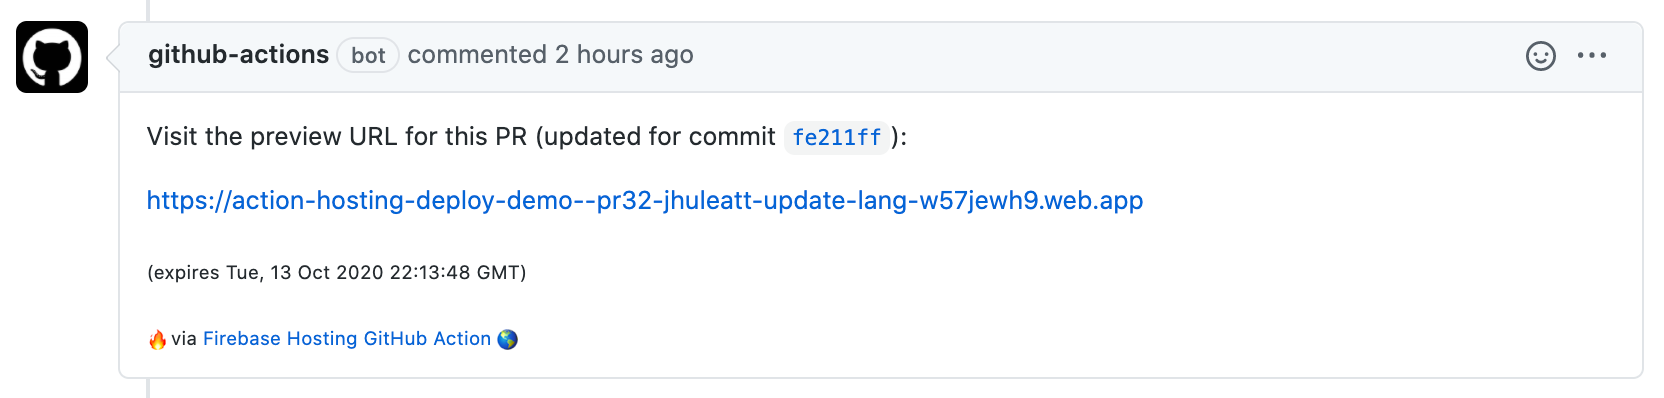 image of GitHub Action PR comment with preview URL